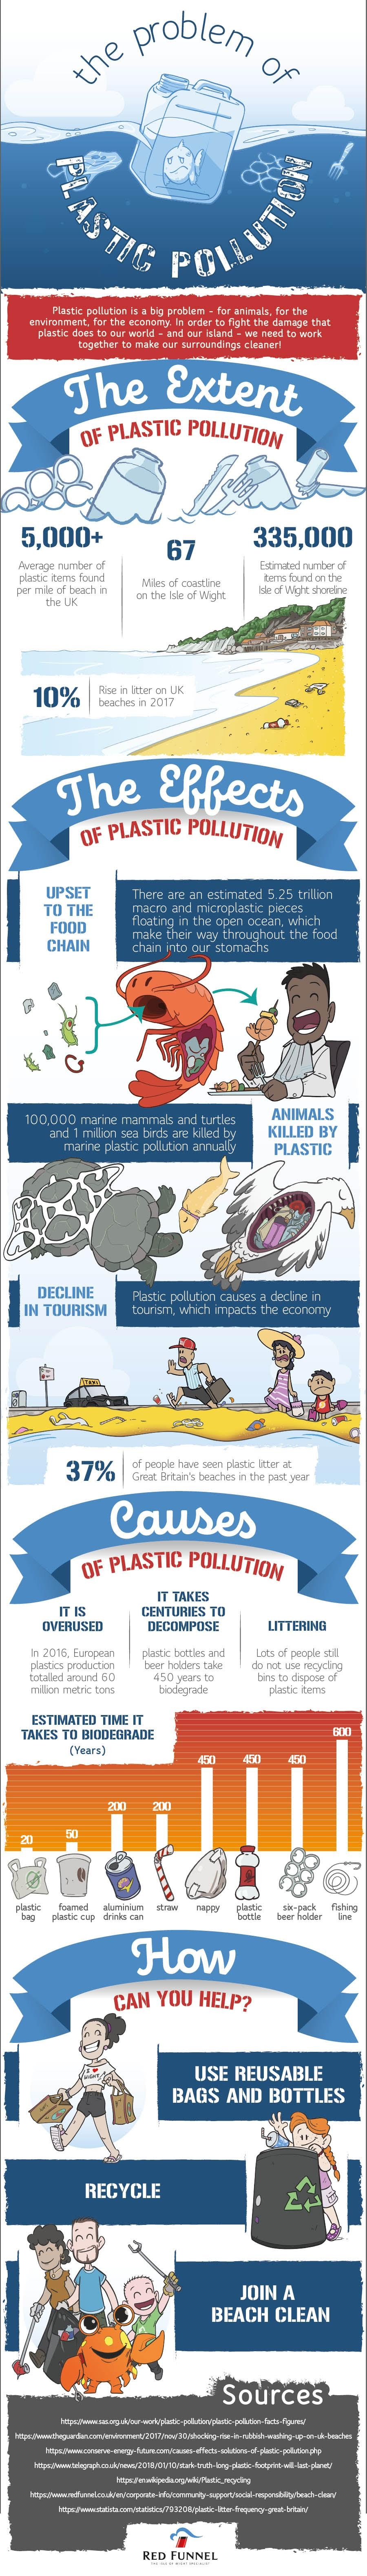 Stopping Plastic Pollution is Not Someone Else's Problem - Infographic